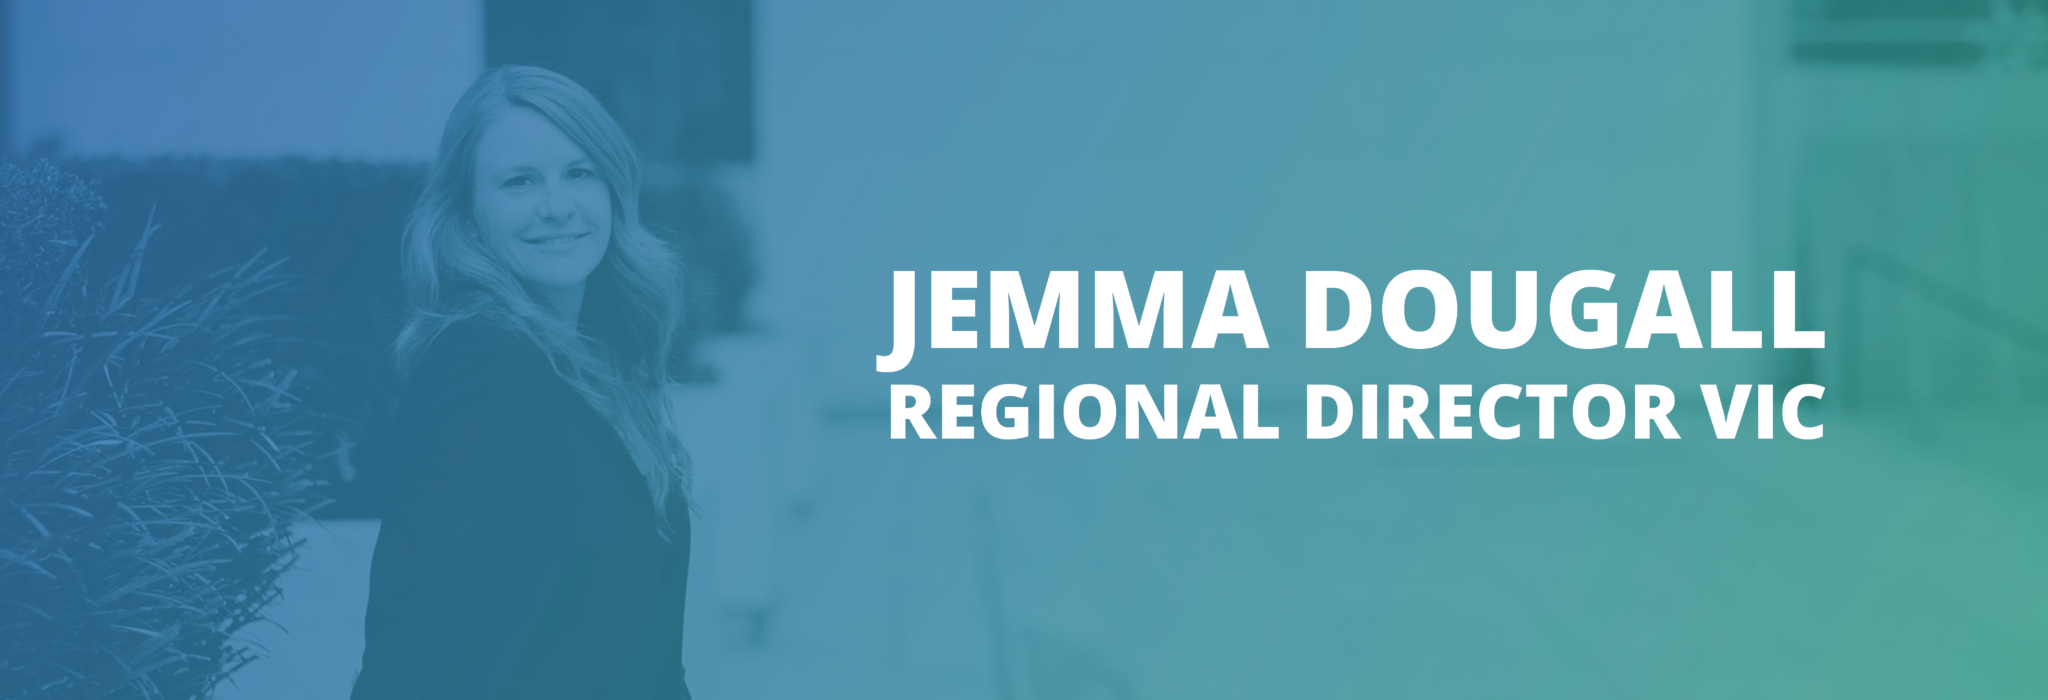 Jemma Dougall appointed new Regional Director, VIC